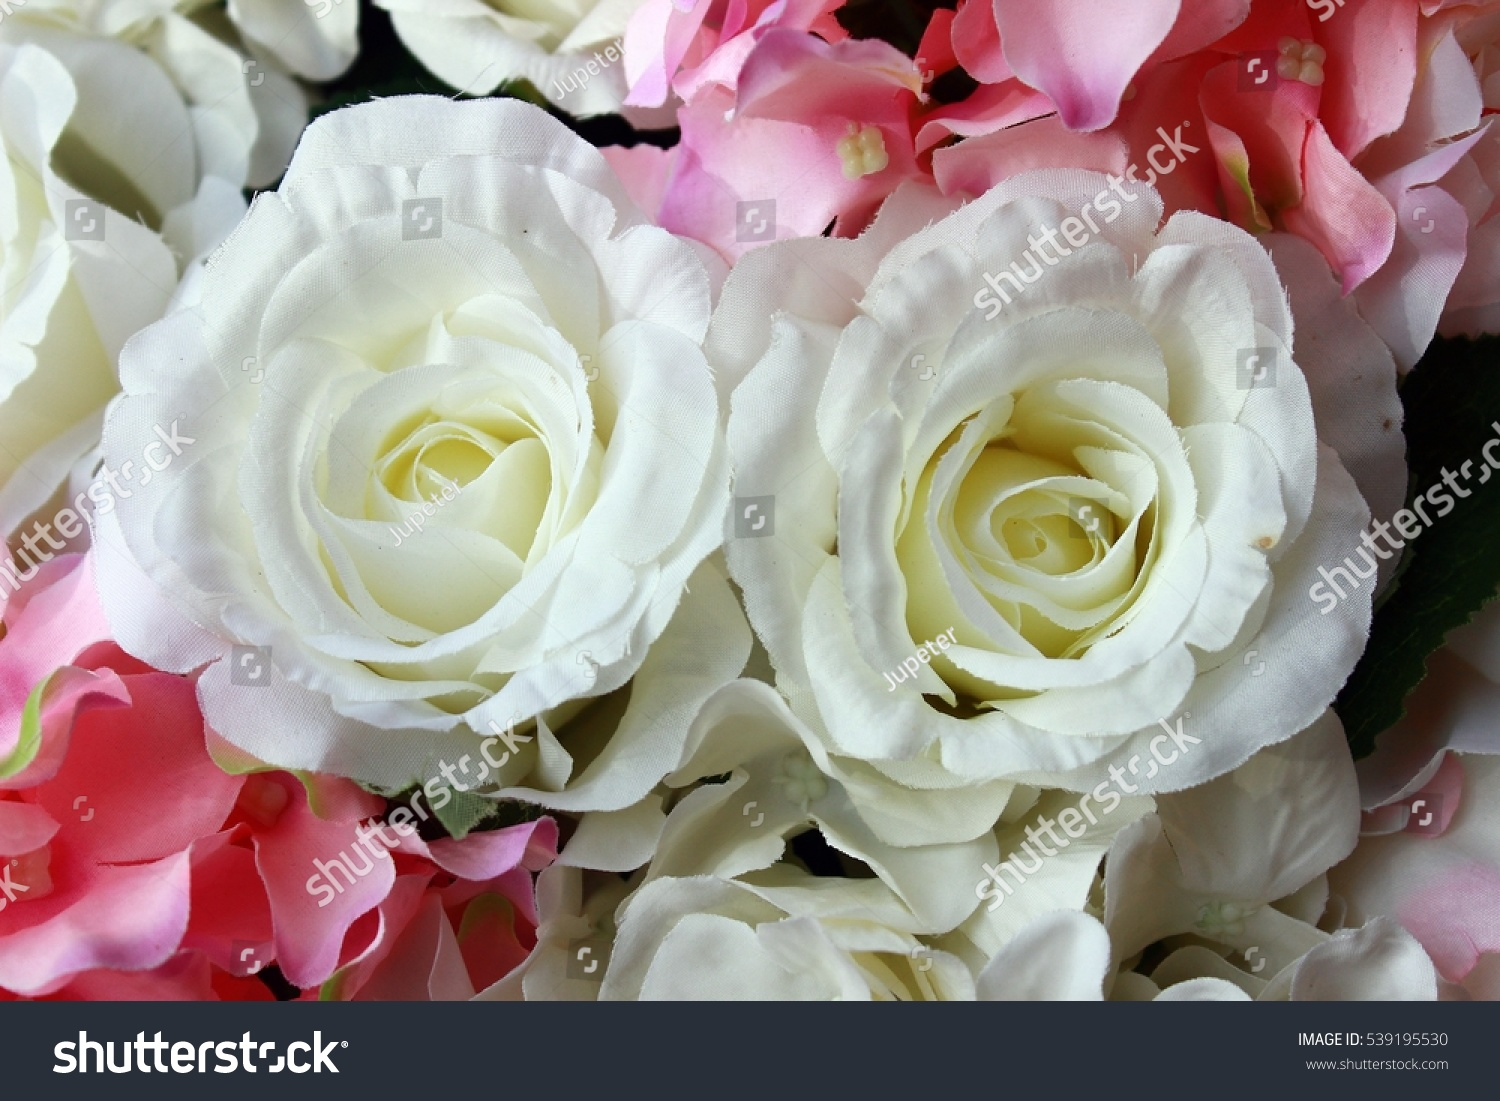 Bridal Roses Wedding Decorations In Colors Full White And Pink